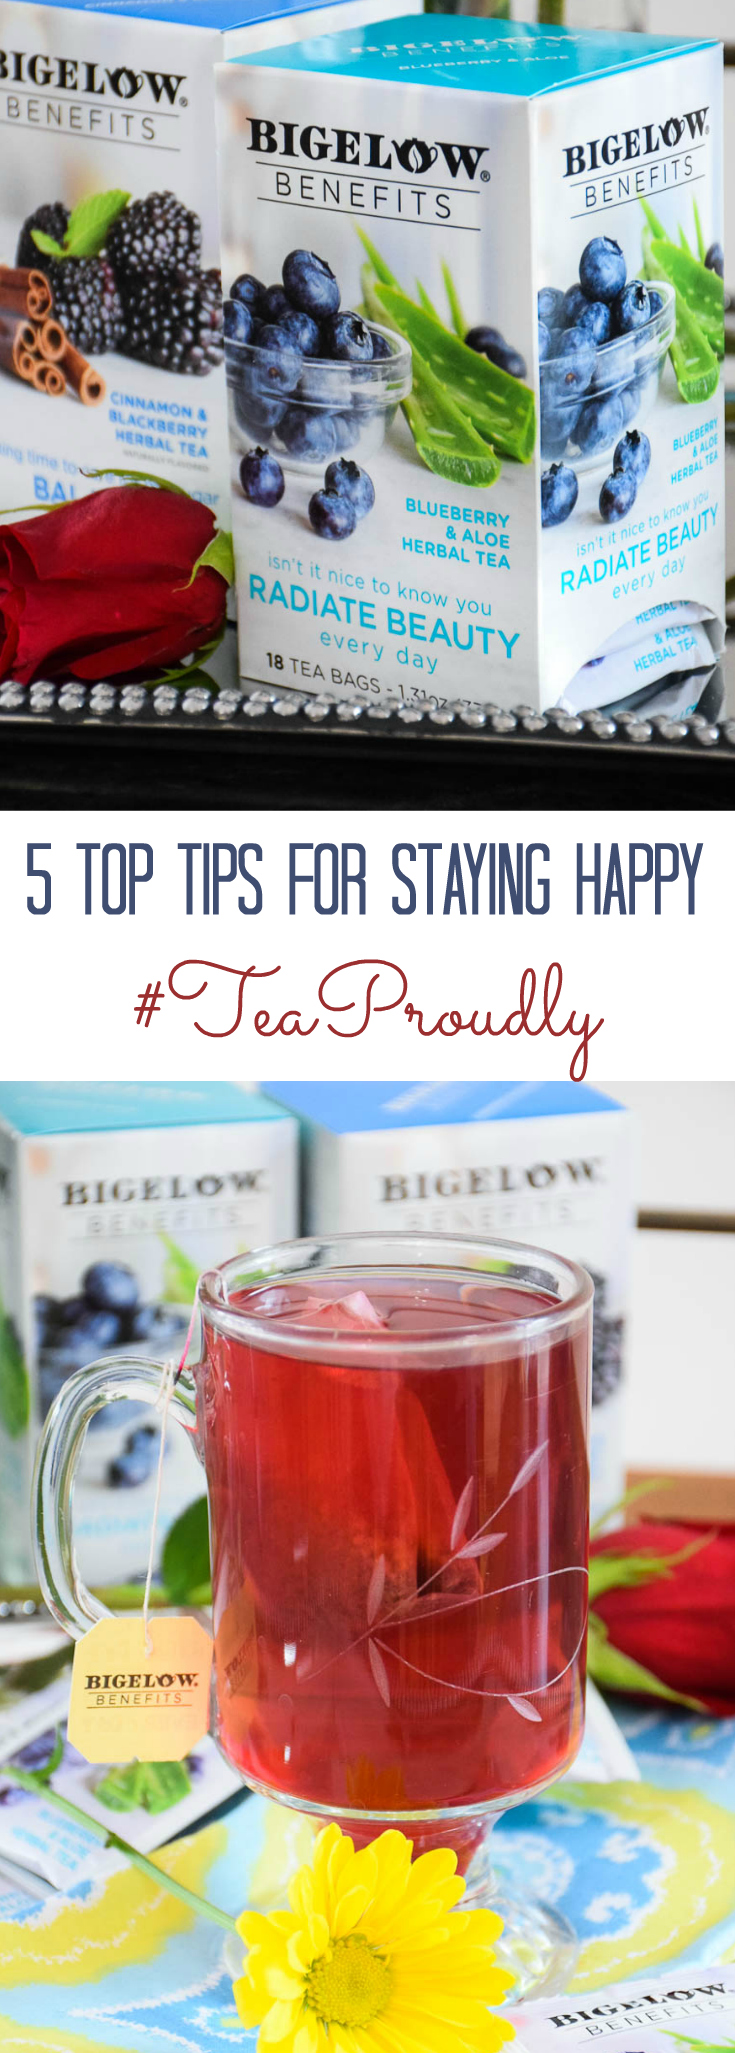 5 Top Tips for Staying Happy